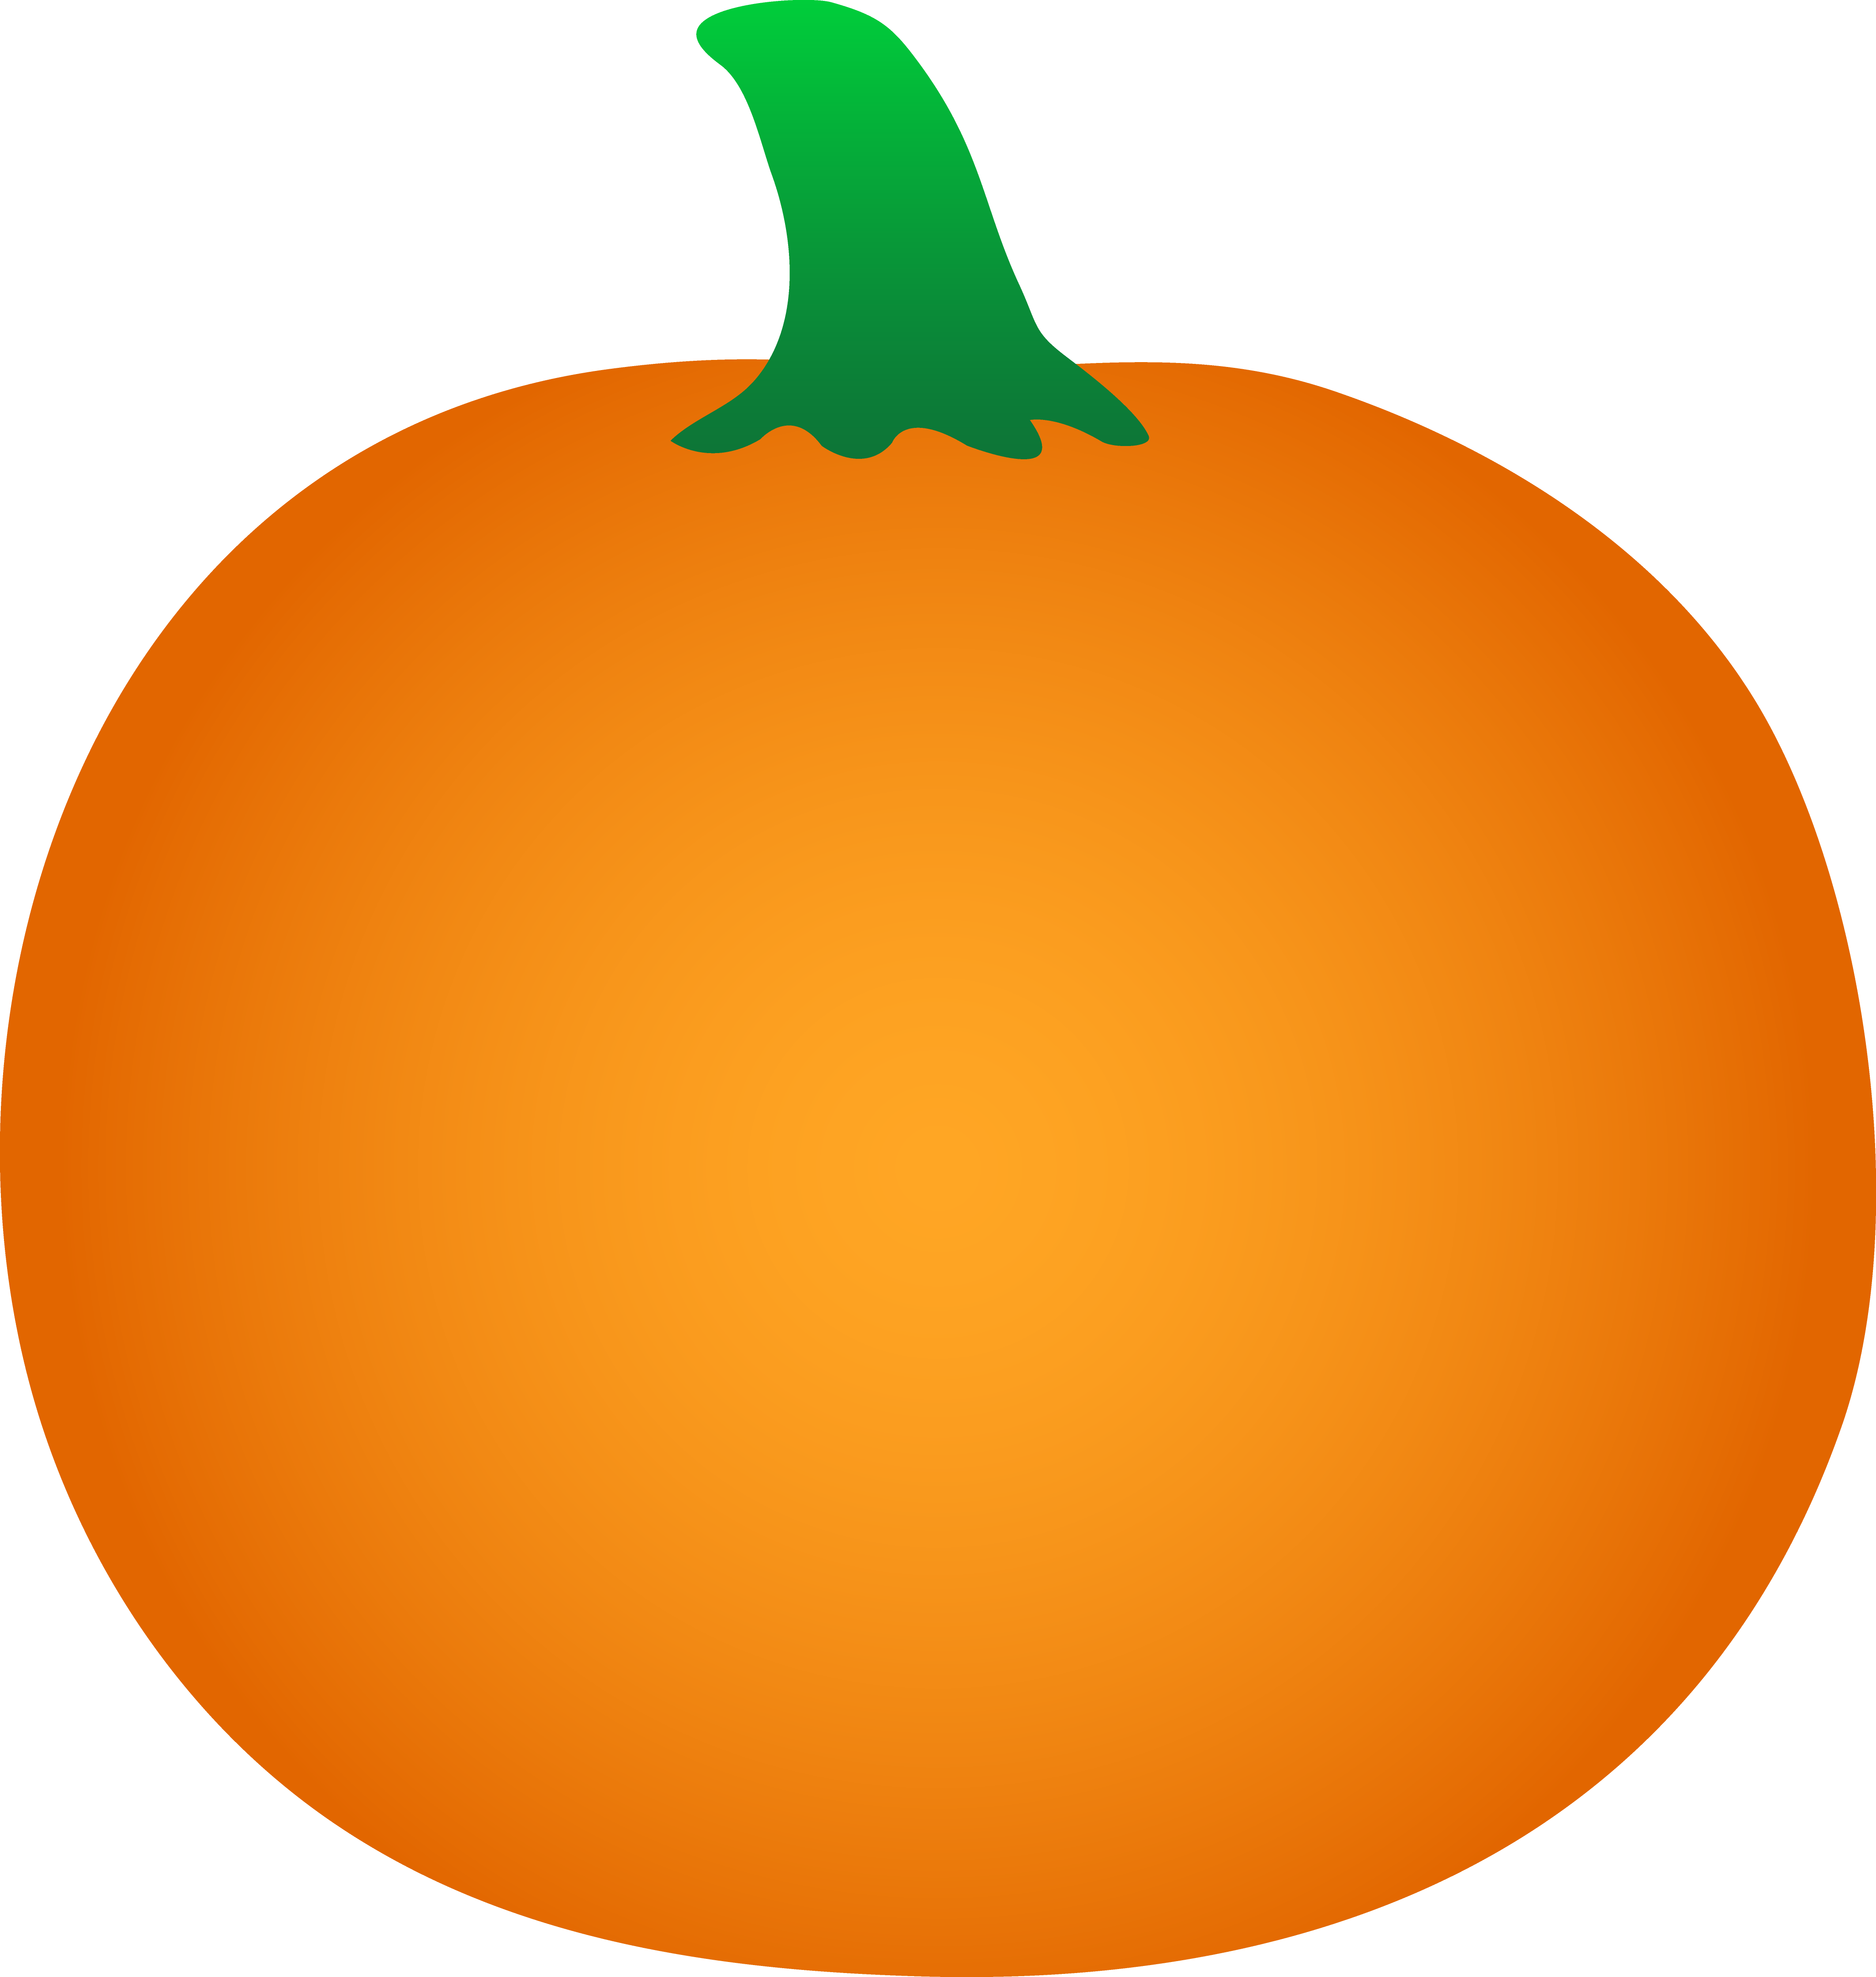 Pumpkin Clip Art Free & Pumpkin Clip Art Clip Art Images.